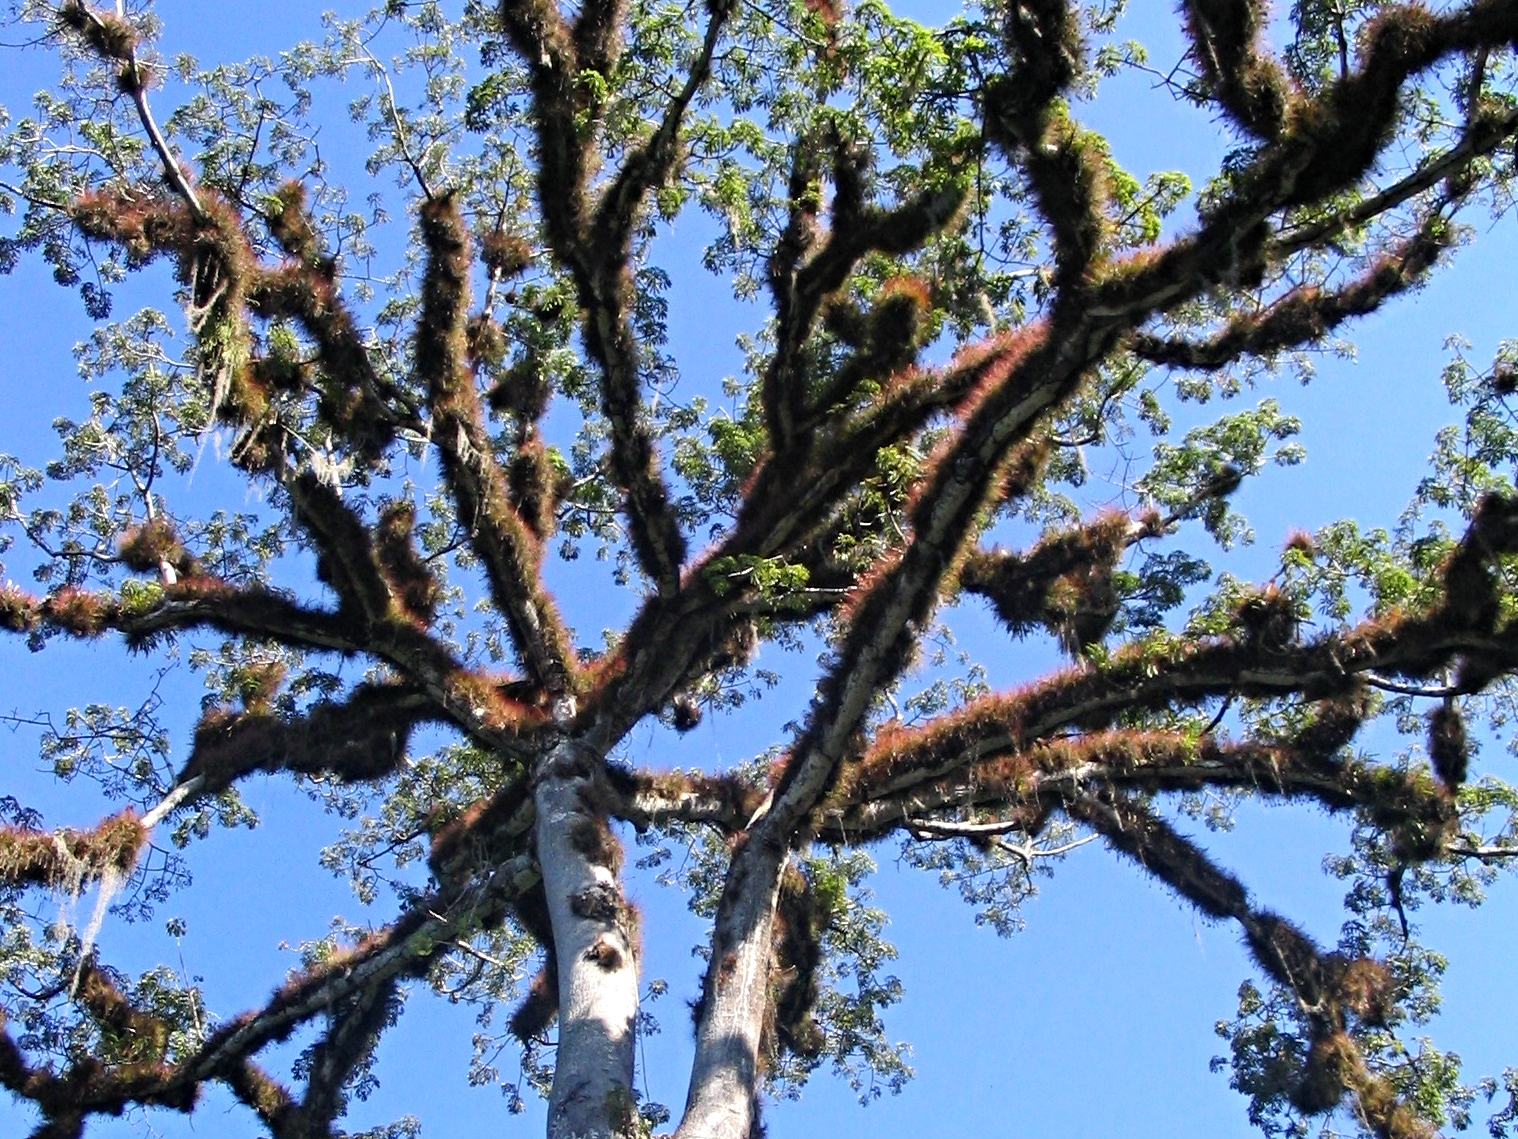 The Ceiba Tree is sacred to Maya people and among the tallest trees in the forest